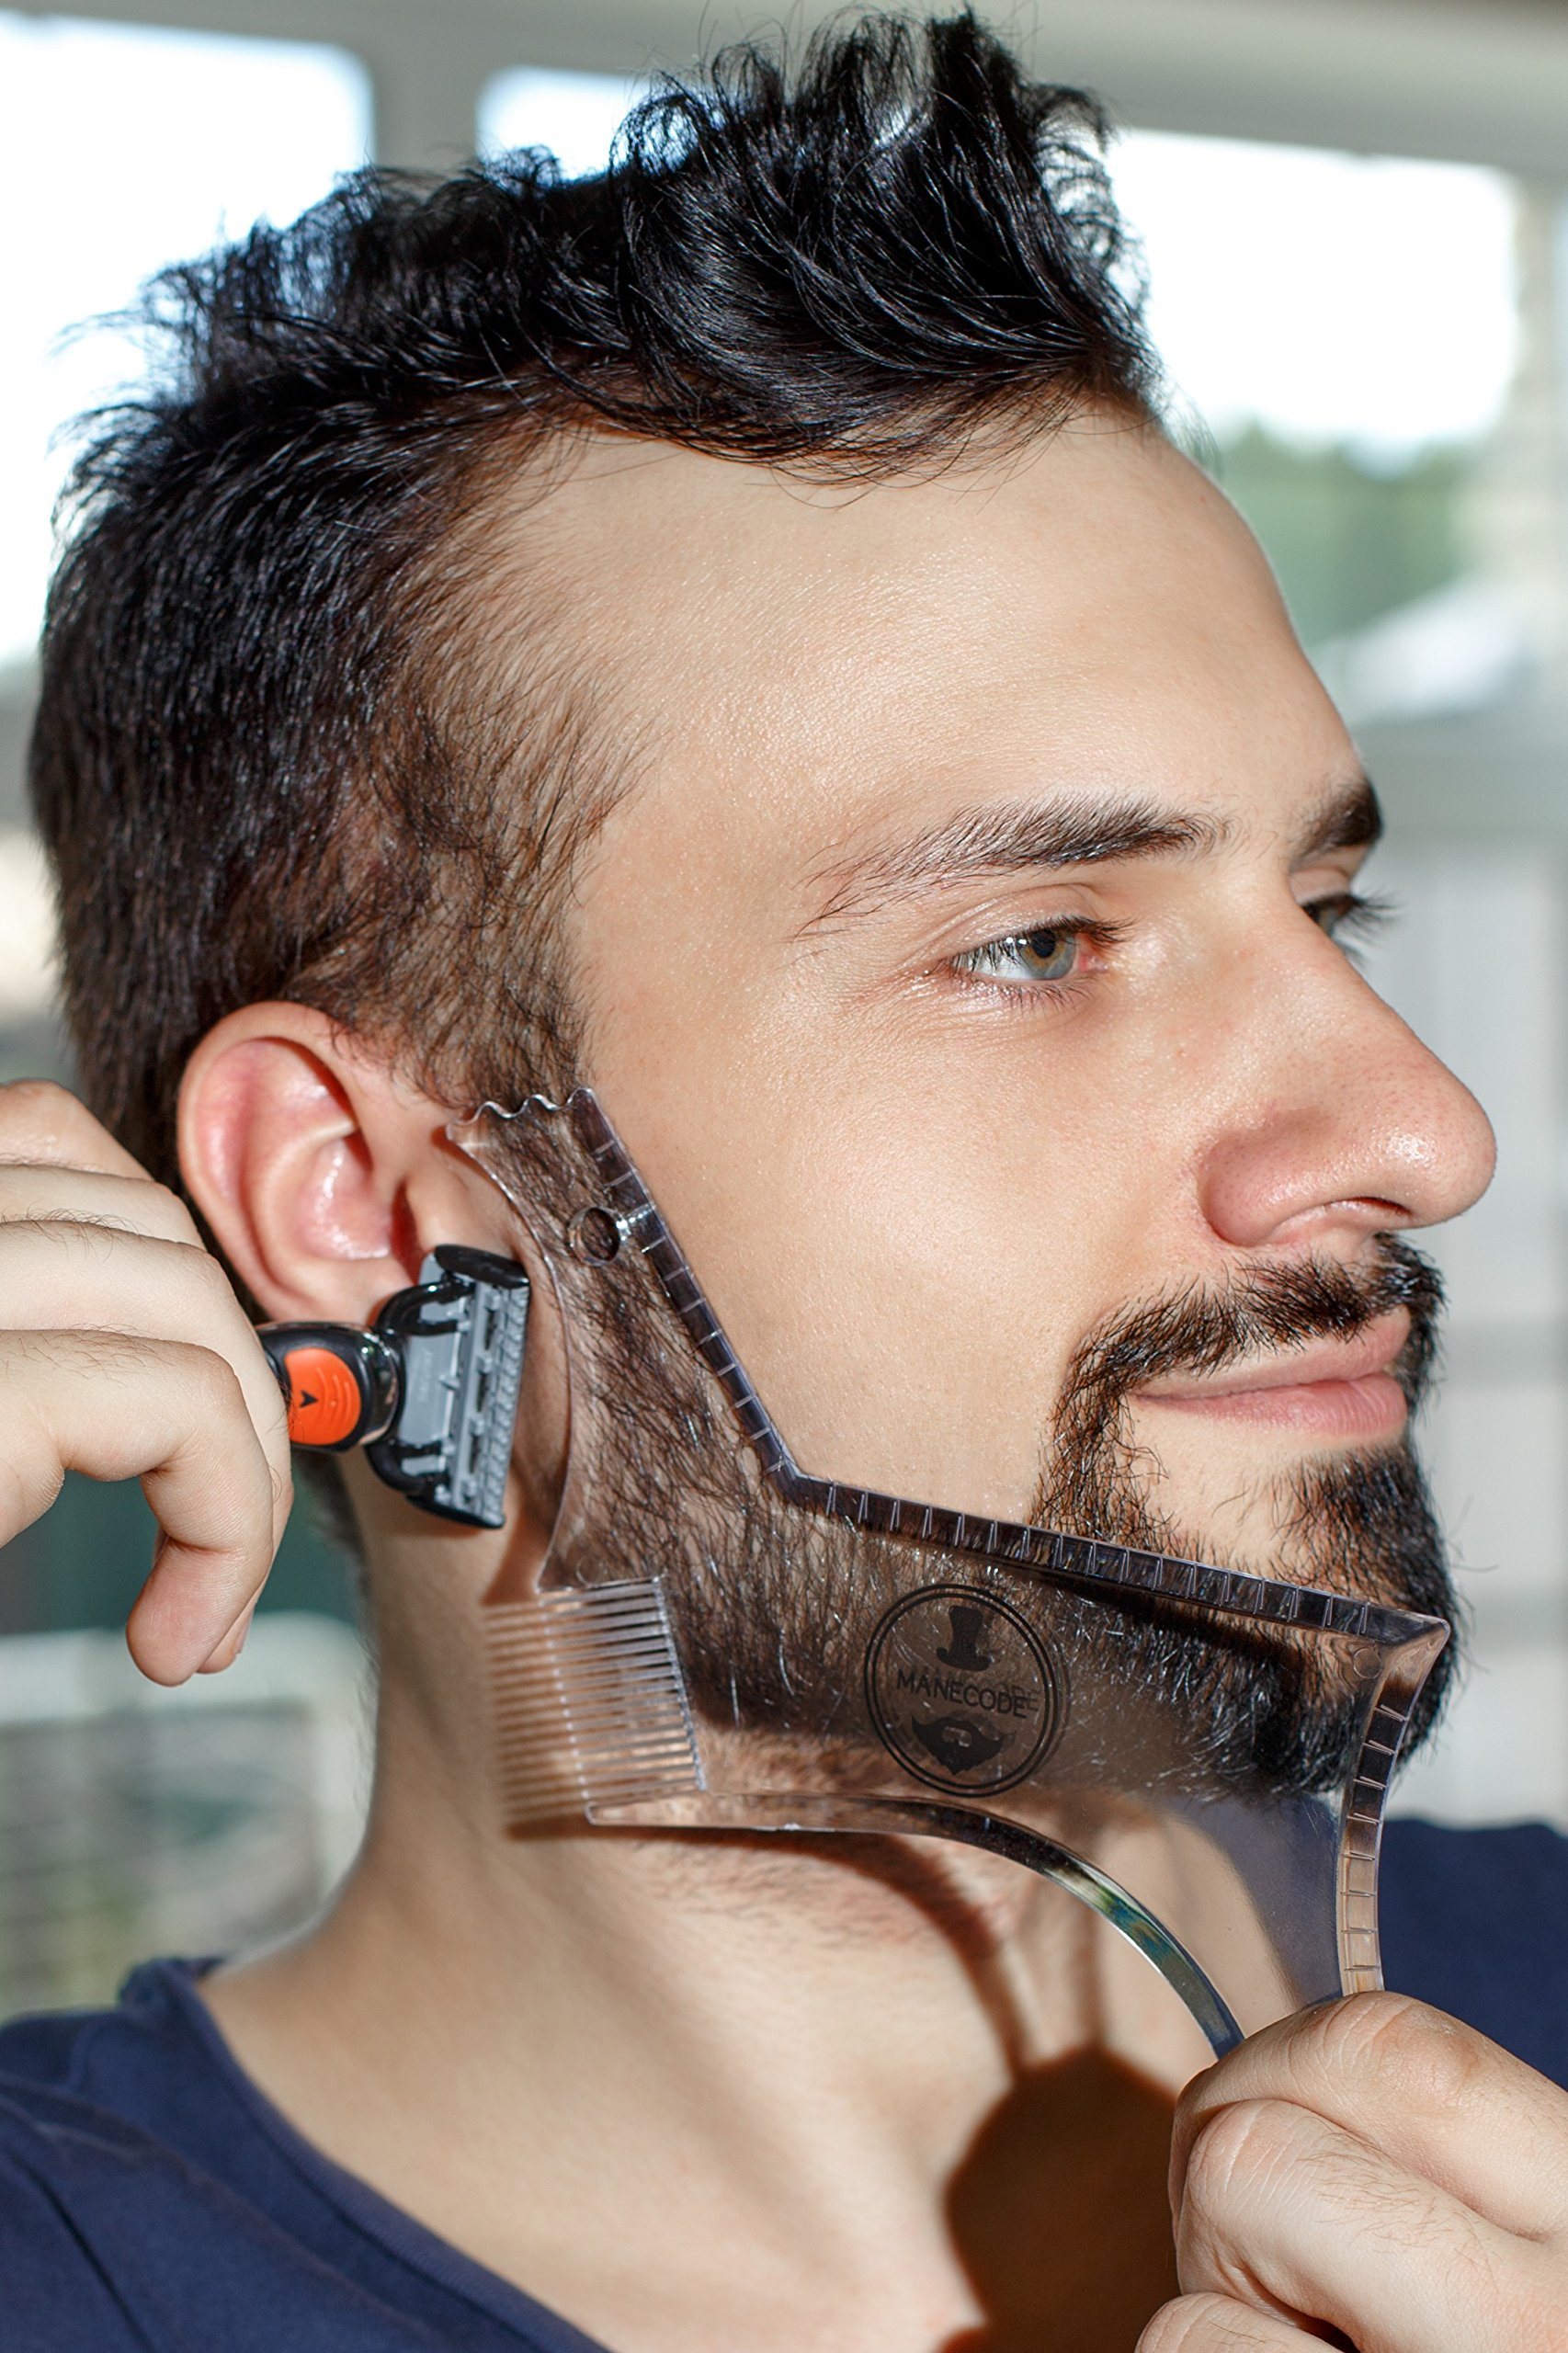 Manecode Beard Guide Shaper Tool - Clear Trimming Template - Shaping Stencil With Built-In Comb